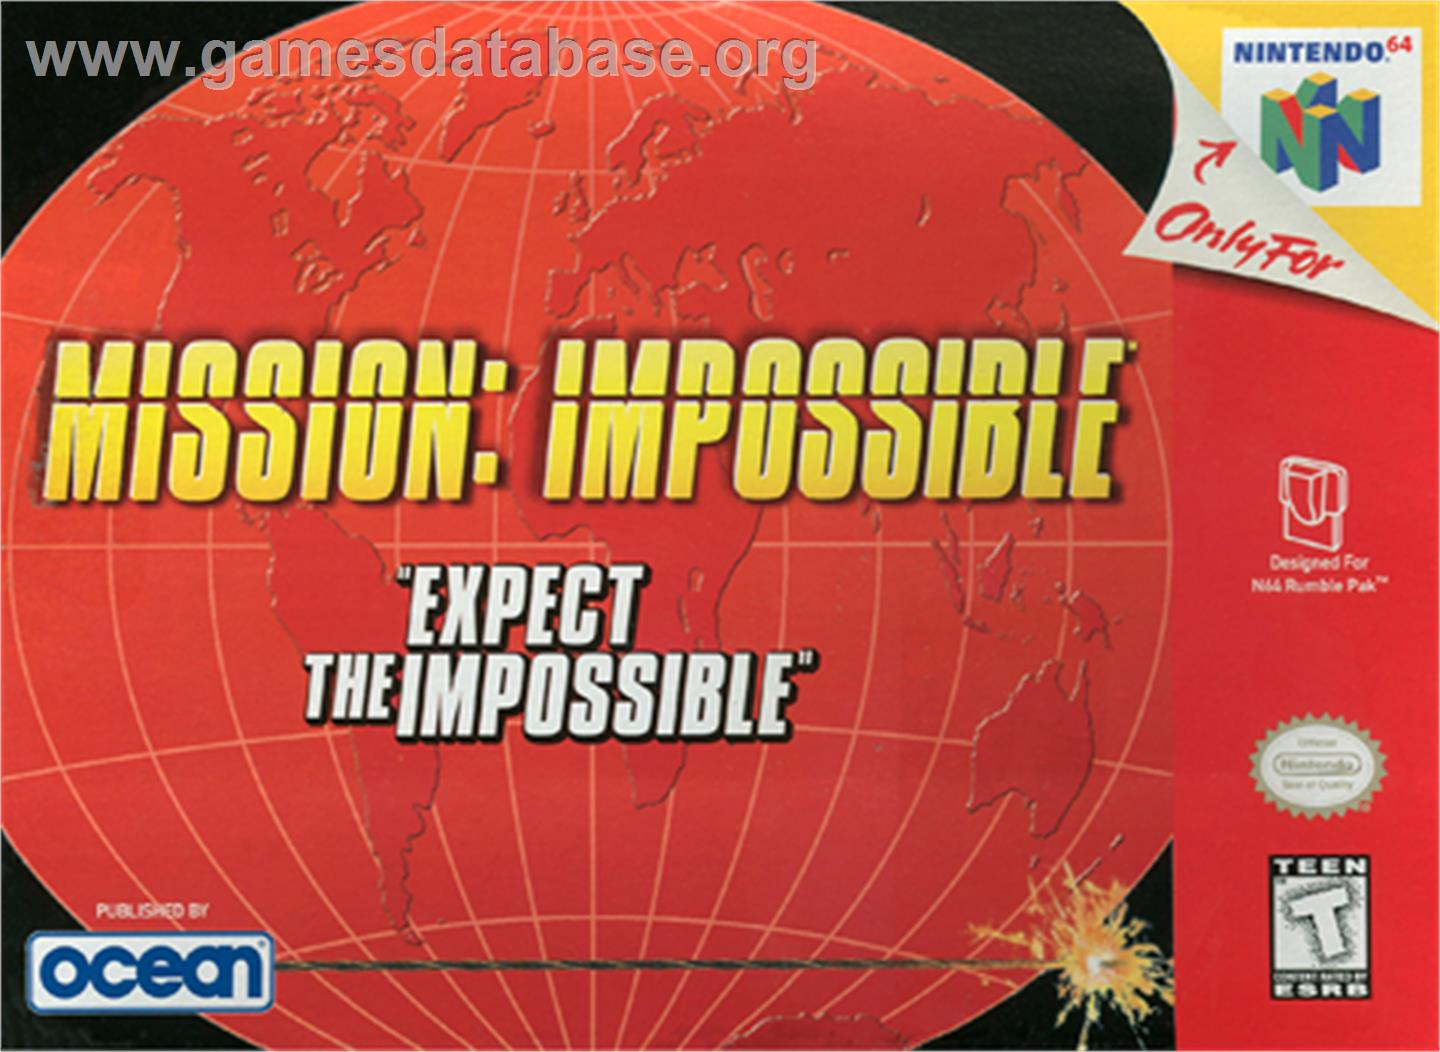 Mission Impossible - Nintendo N64 - Artwork - Box